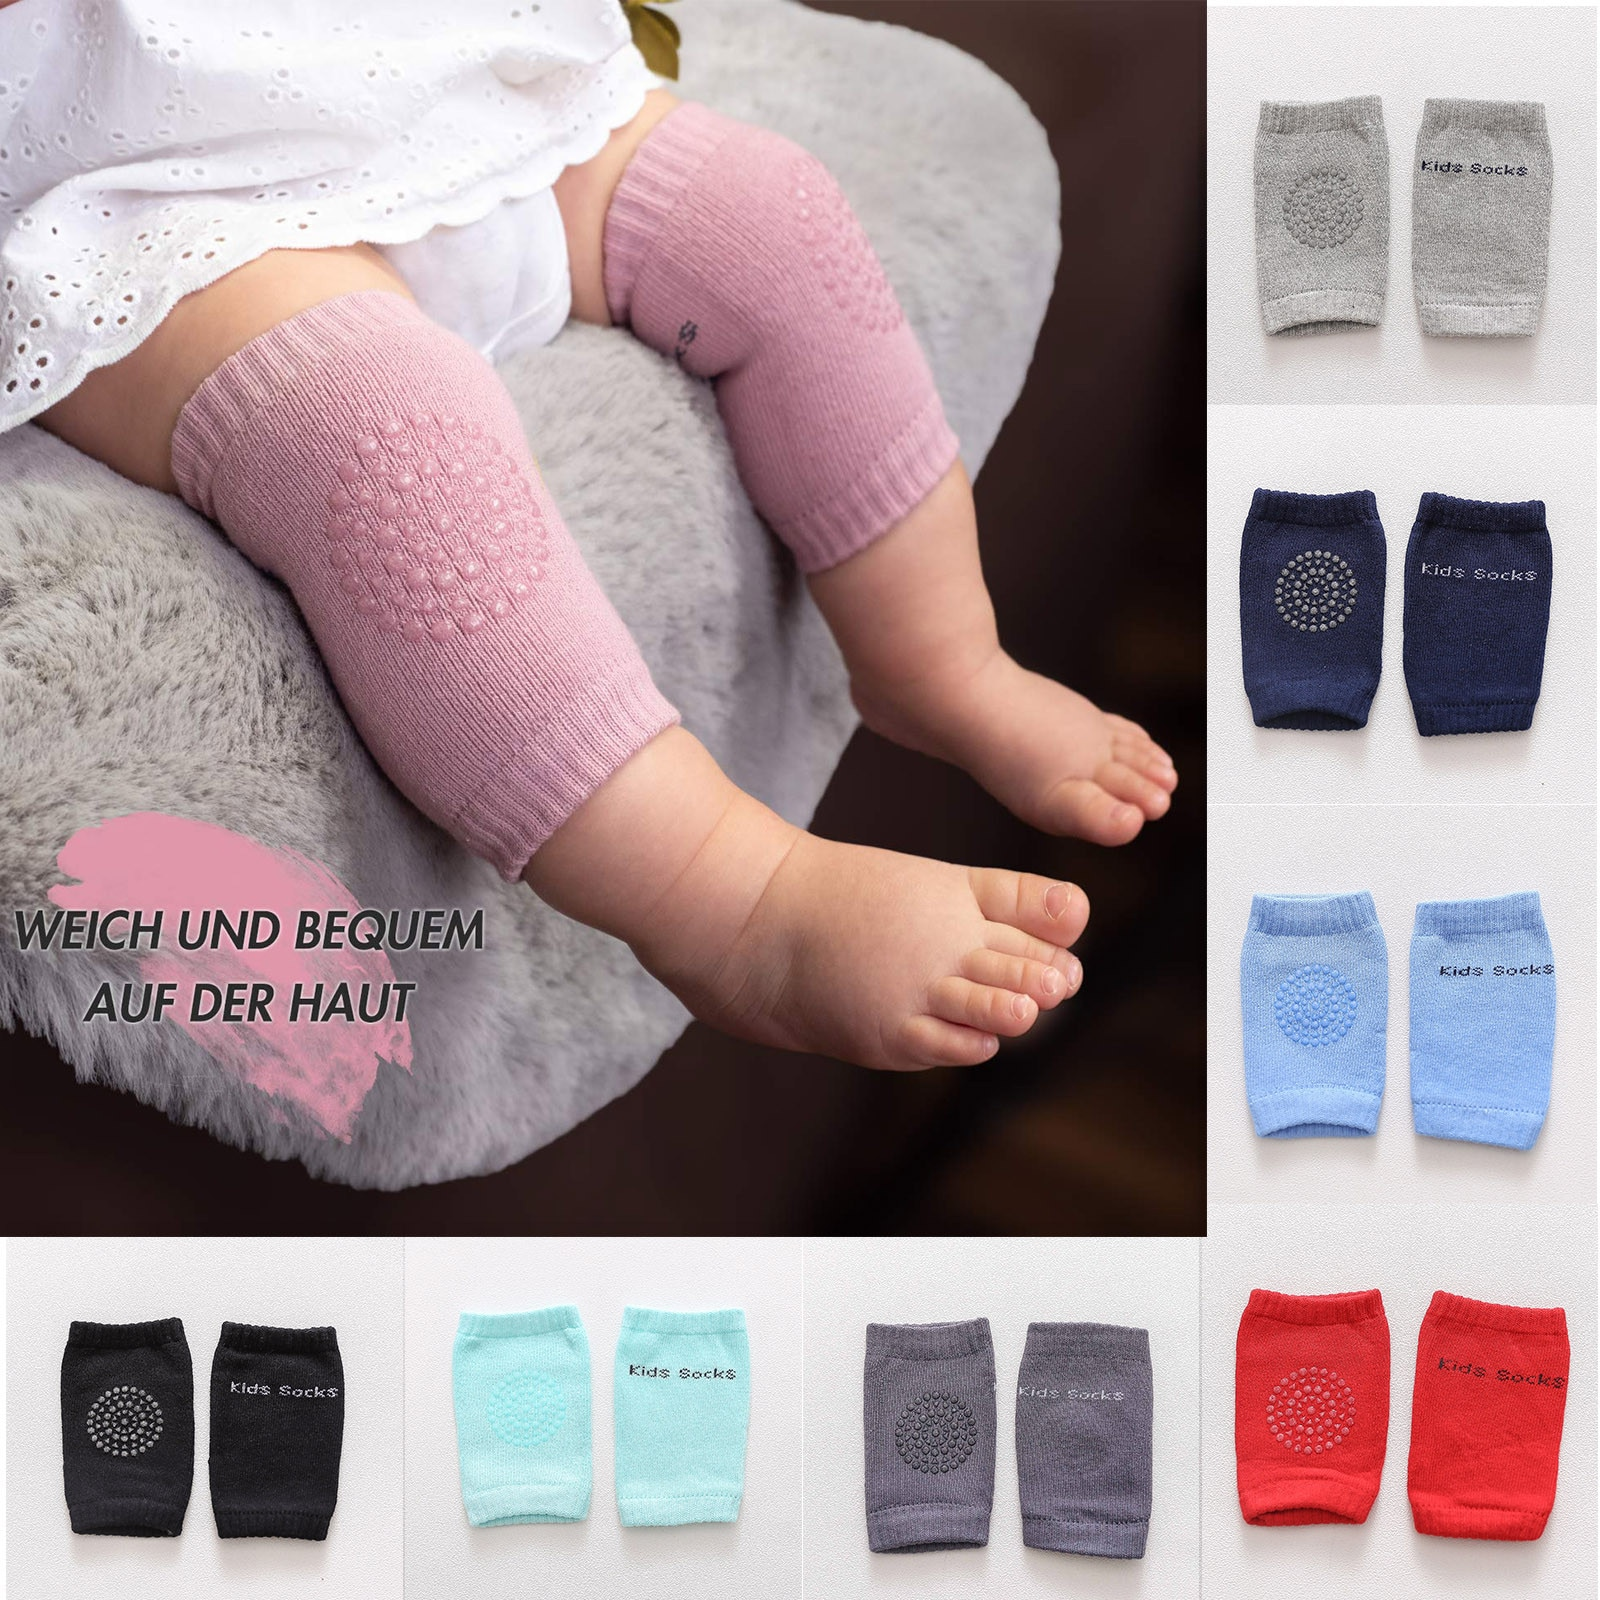 Free Shipping Toddler Kids Baby Safety Sport Crawling Elbow Cushion Knee Pads Protective Gear Rodill